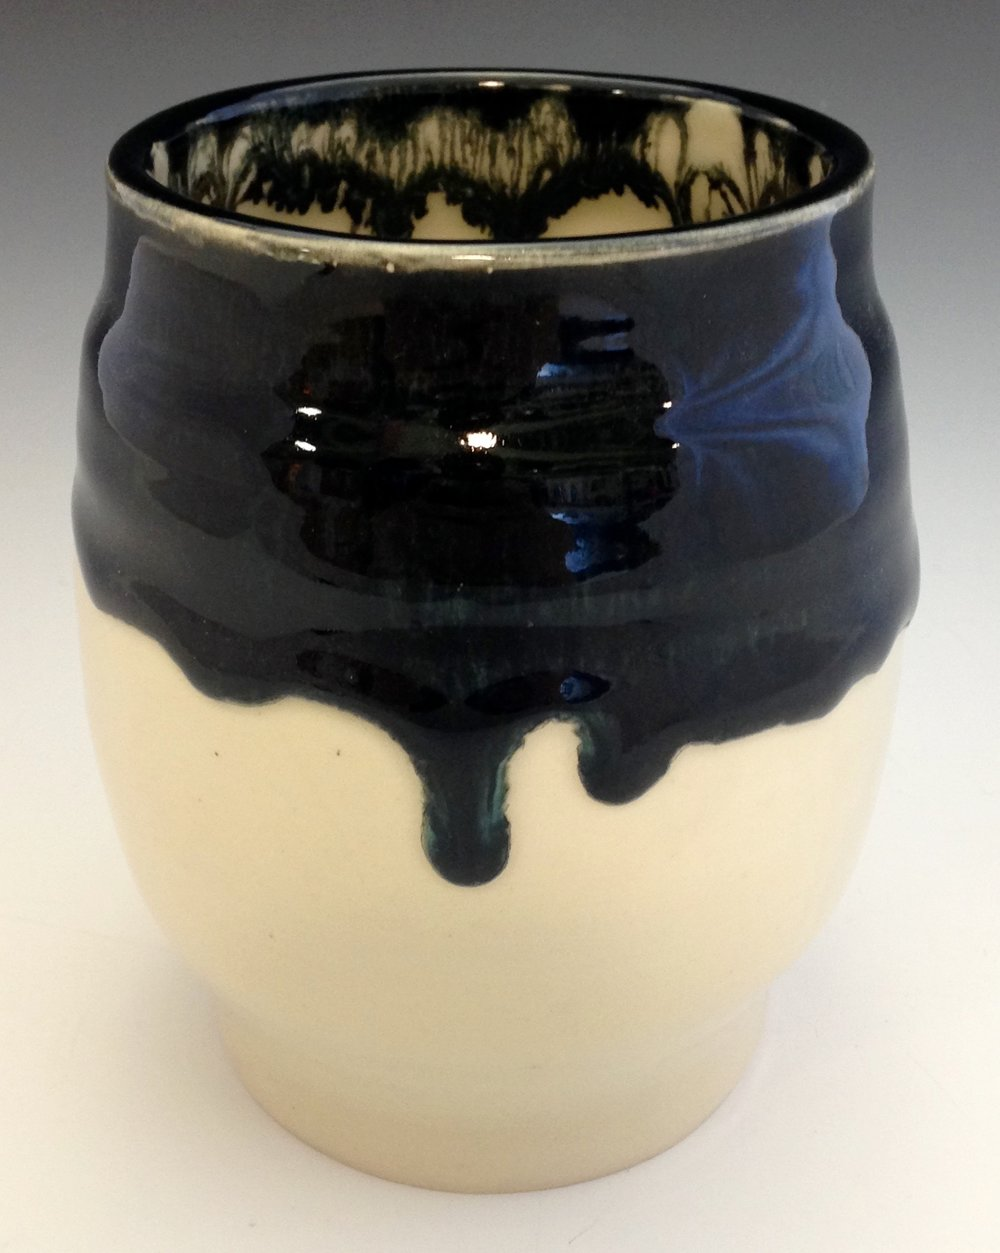 Dripping Vessel (ceramics - 5'' x 5'' x 6'') - Alex Evenchik